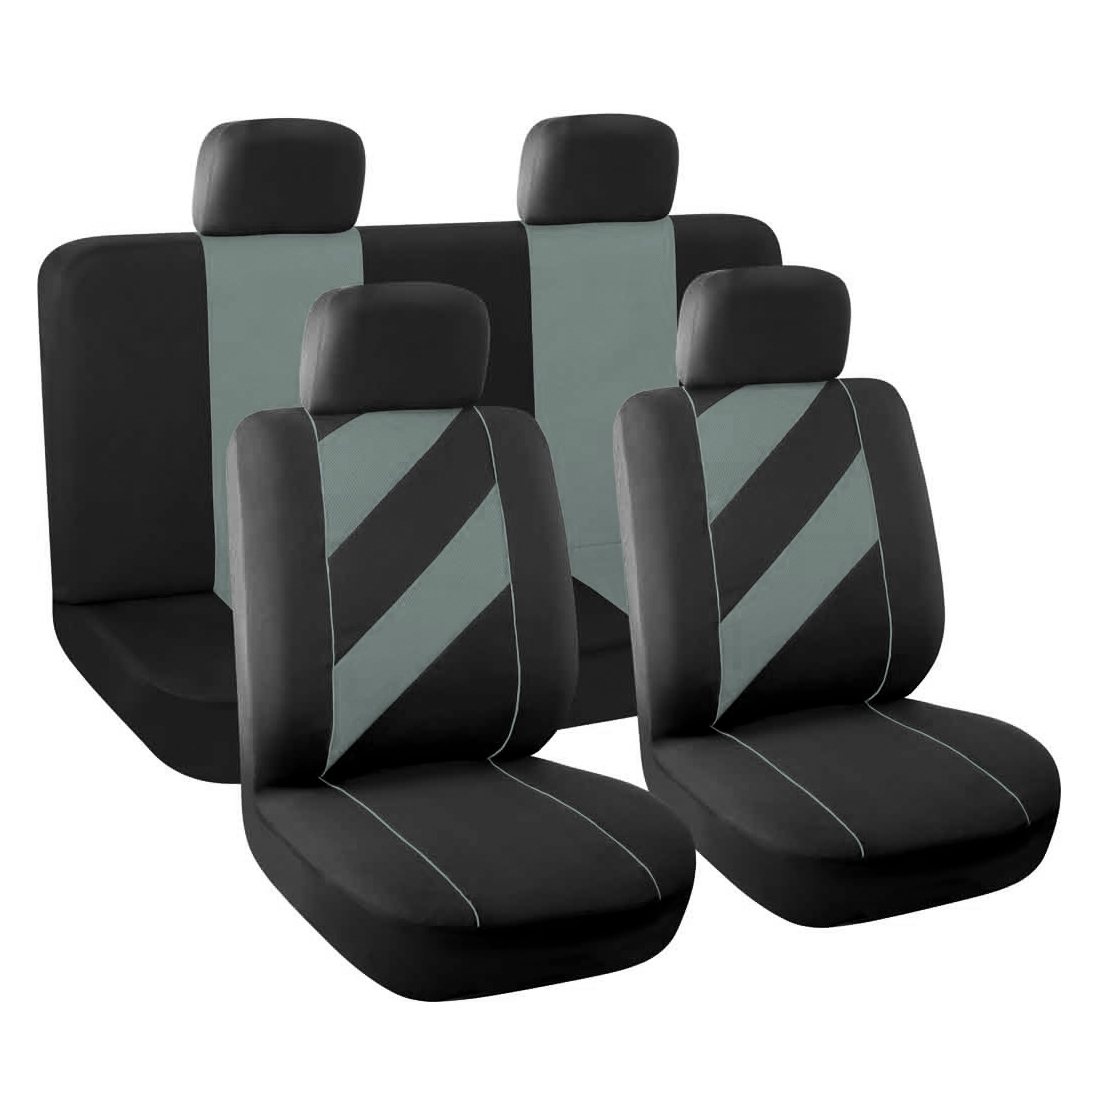 Unique Flat Cloth Full Set Auto Car Seat Covers w/ Headrests